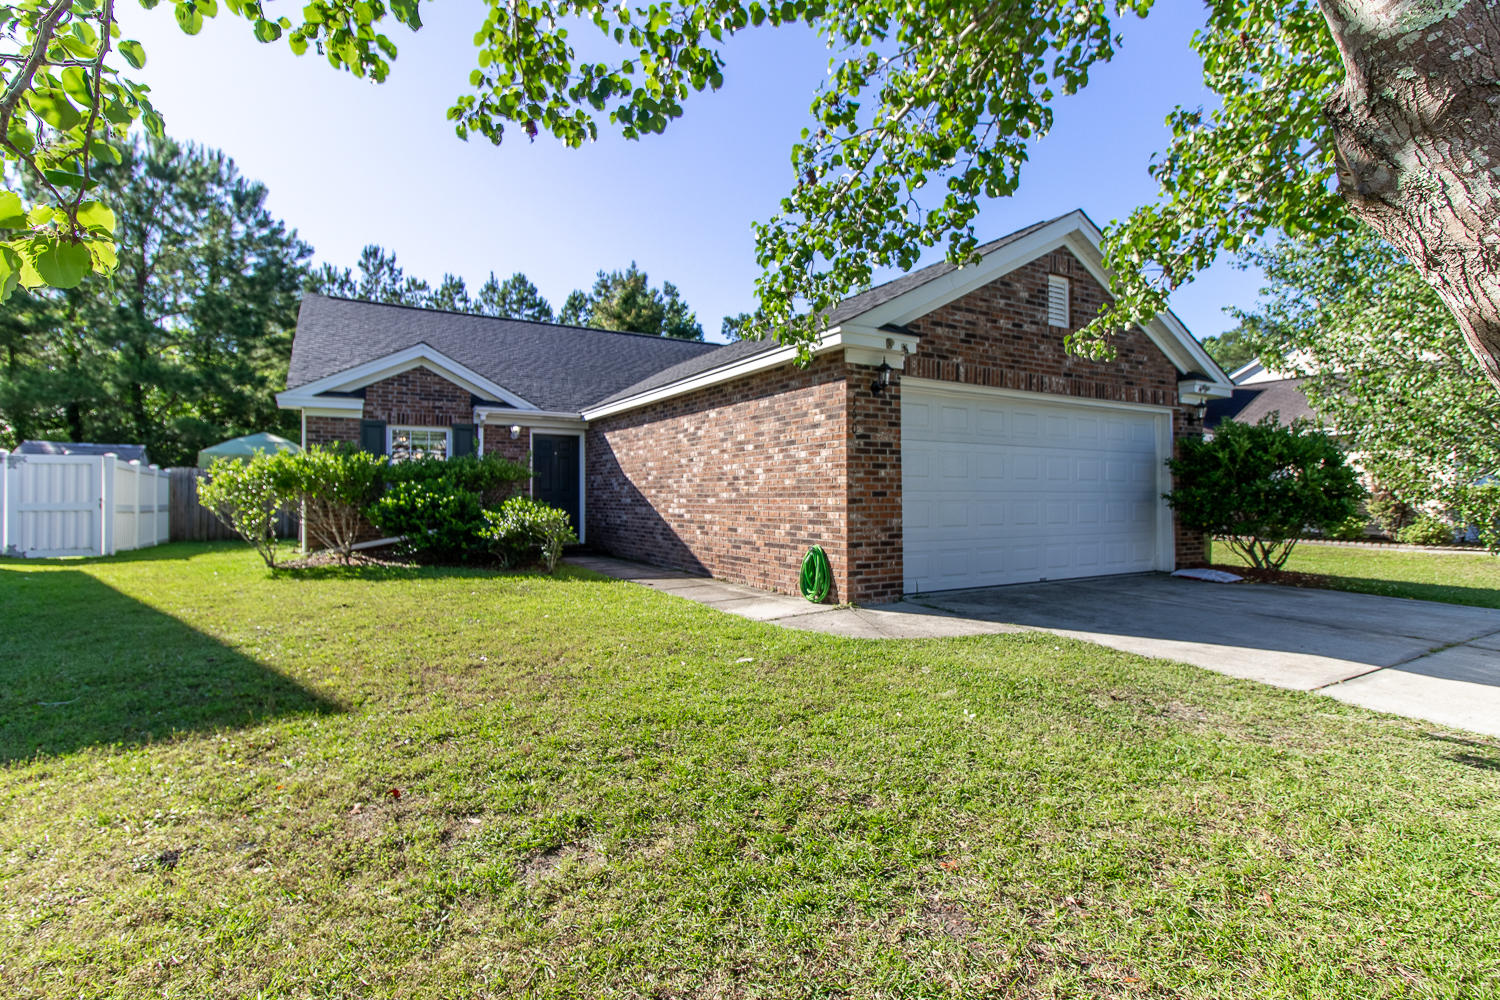 160 Two Pond Loop Ladson, Sc 29456